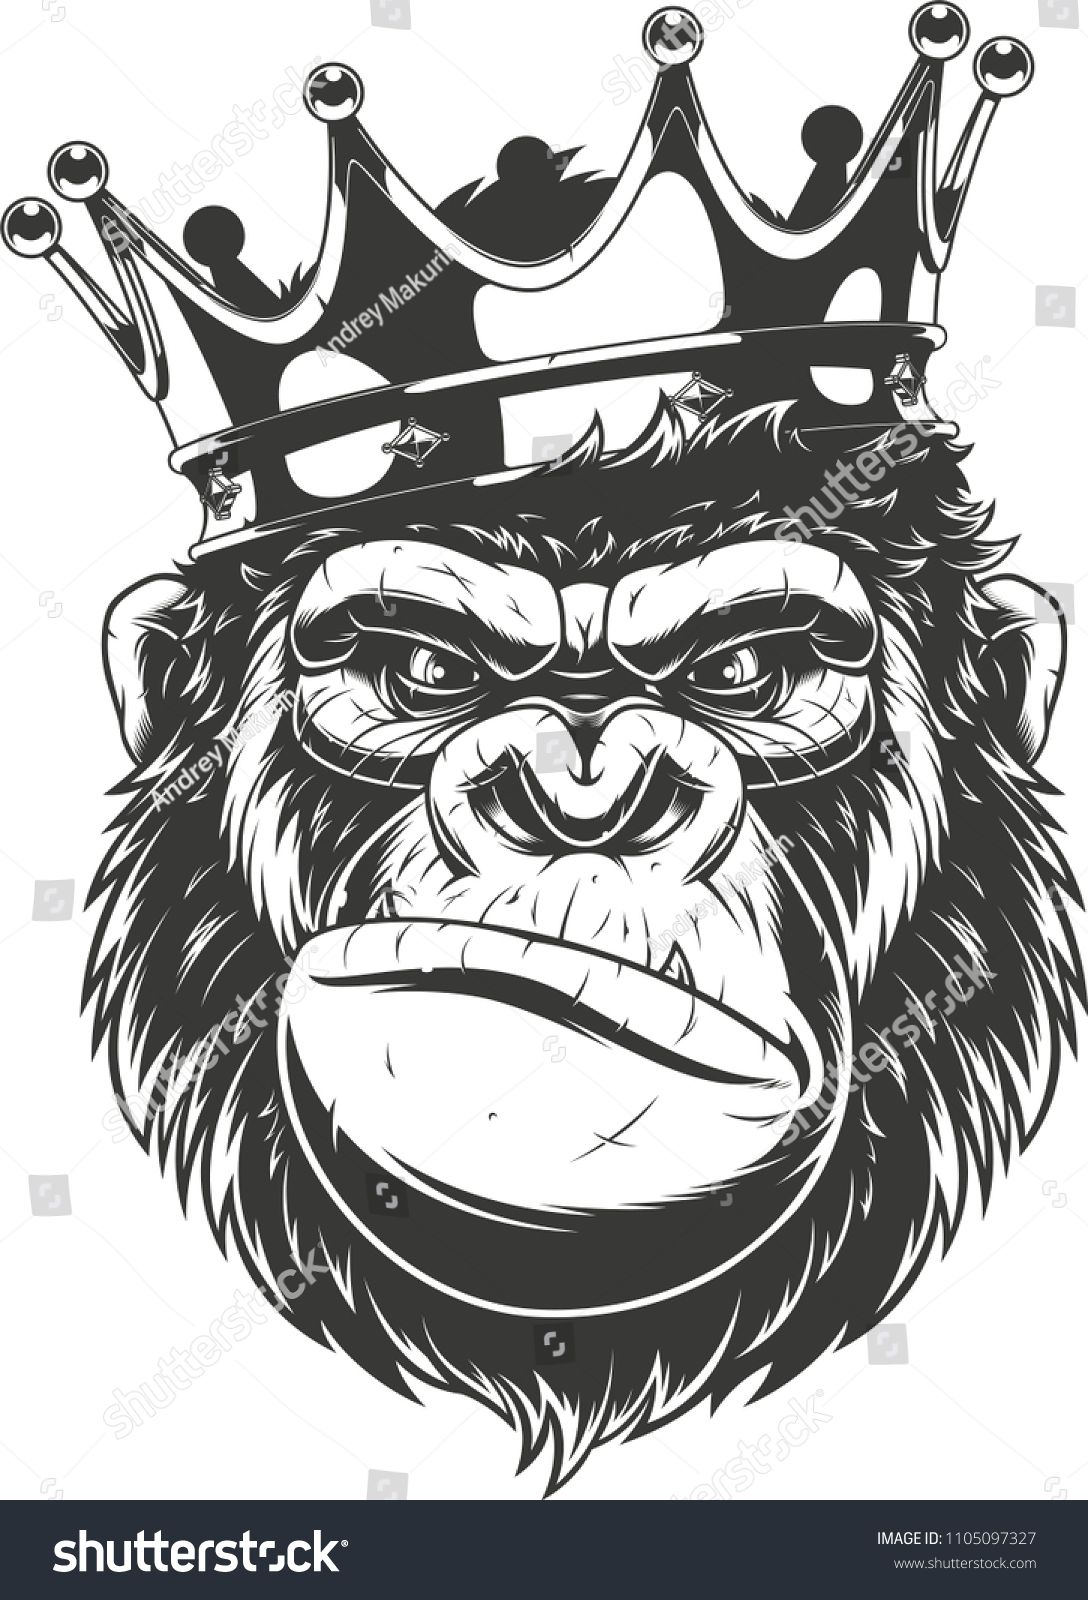 Vector Illustration Of A Funny Gorilla Head In Crown Isolated Image On A White Backgroundgorilla Head Funny Gorilla Illustration Gorilla Tattoo Gorillas Art